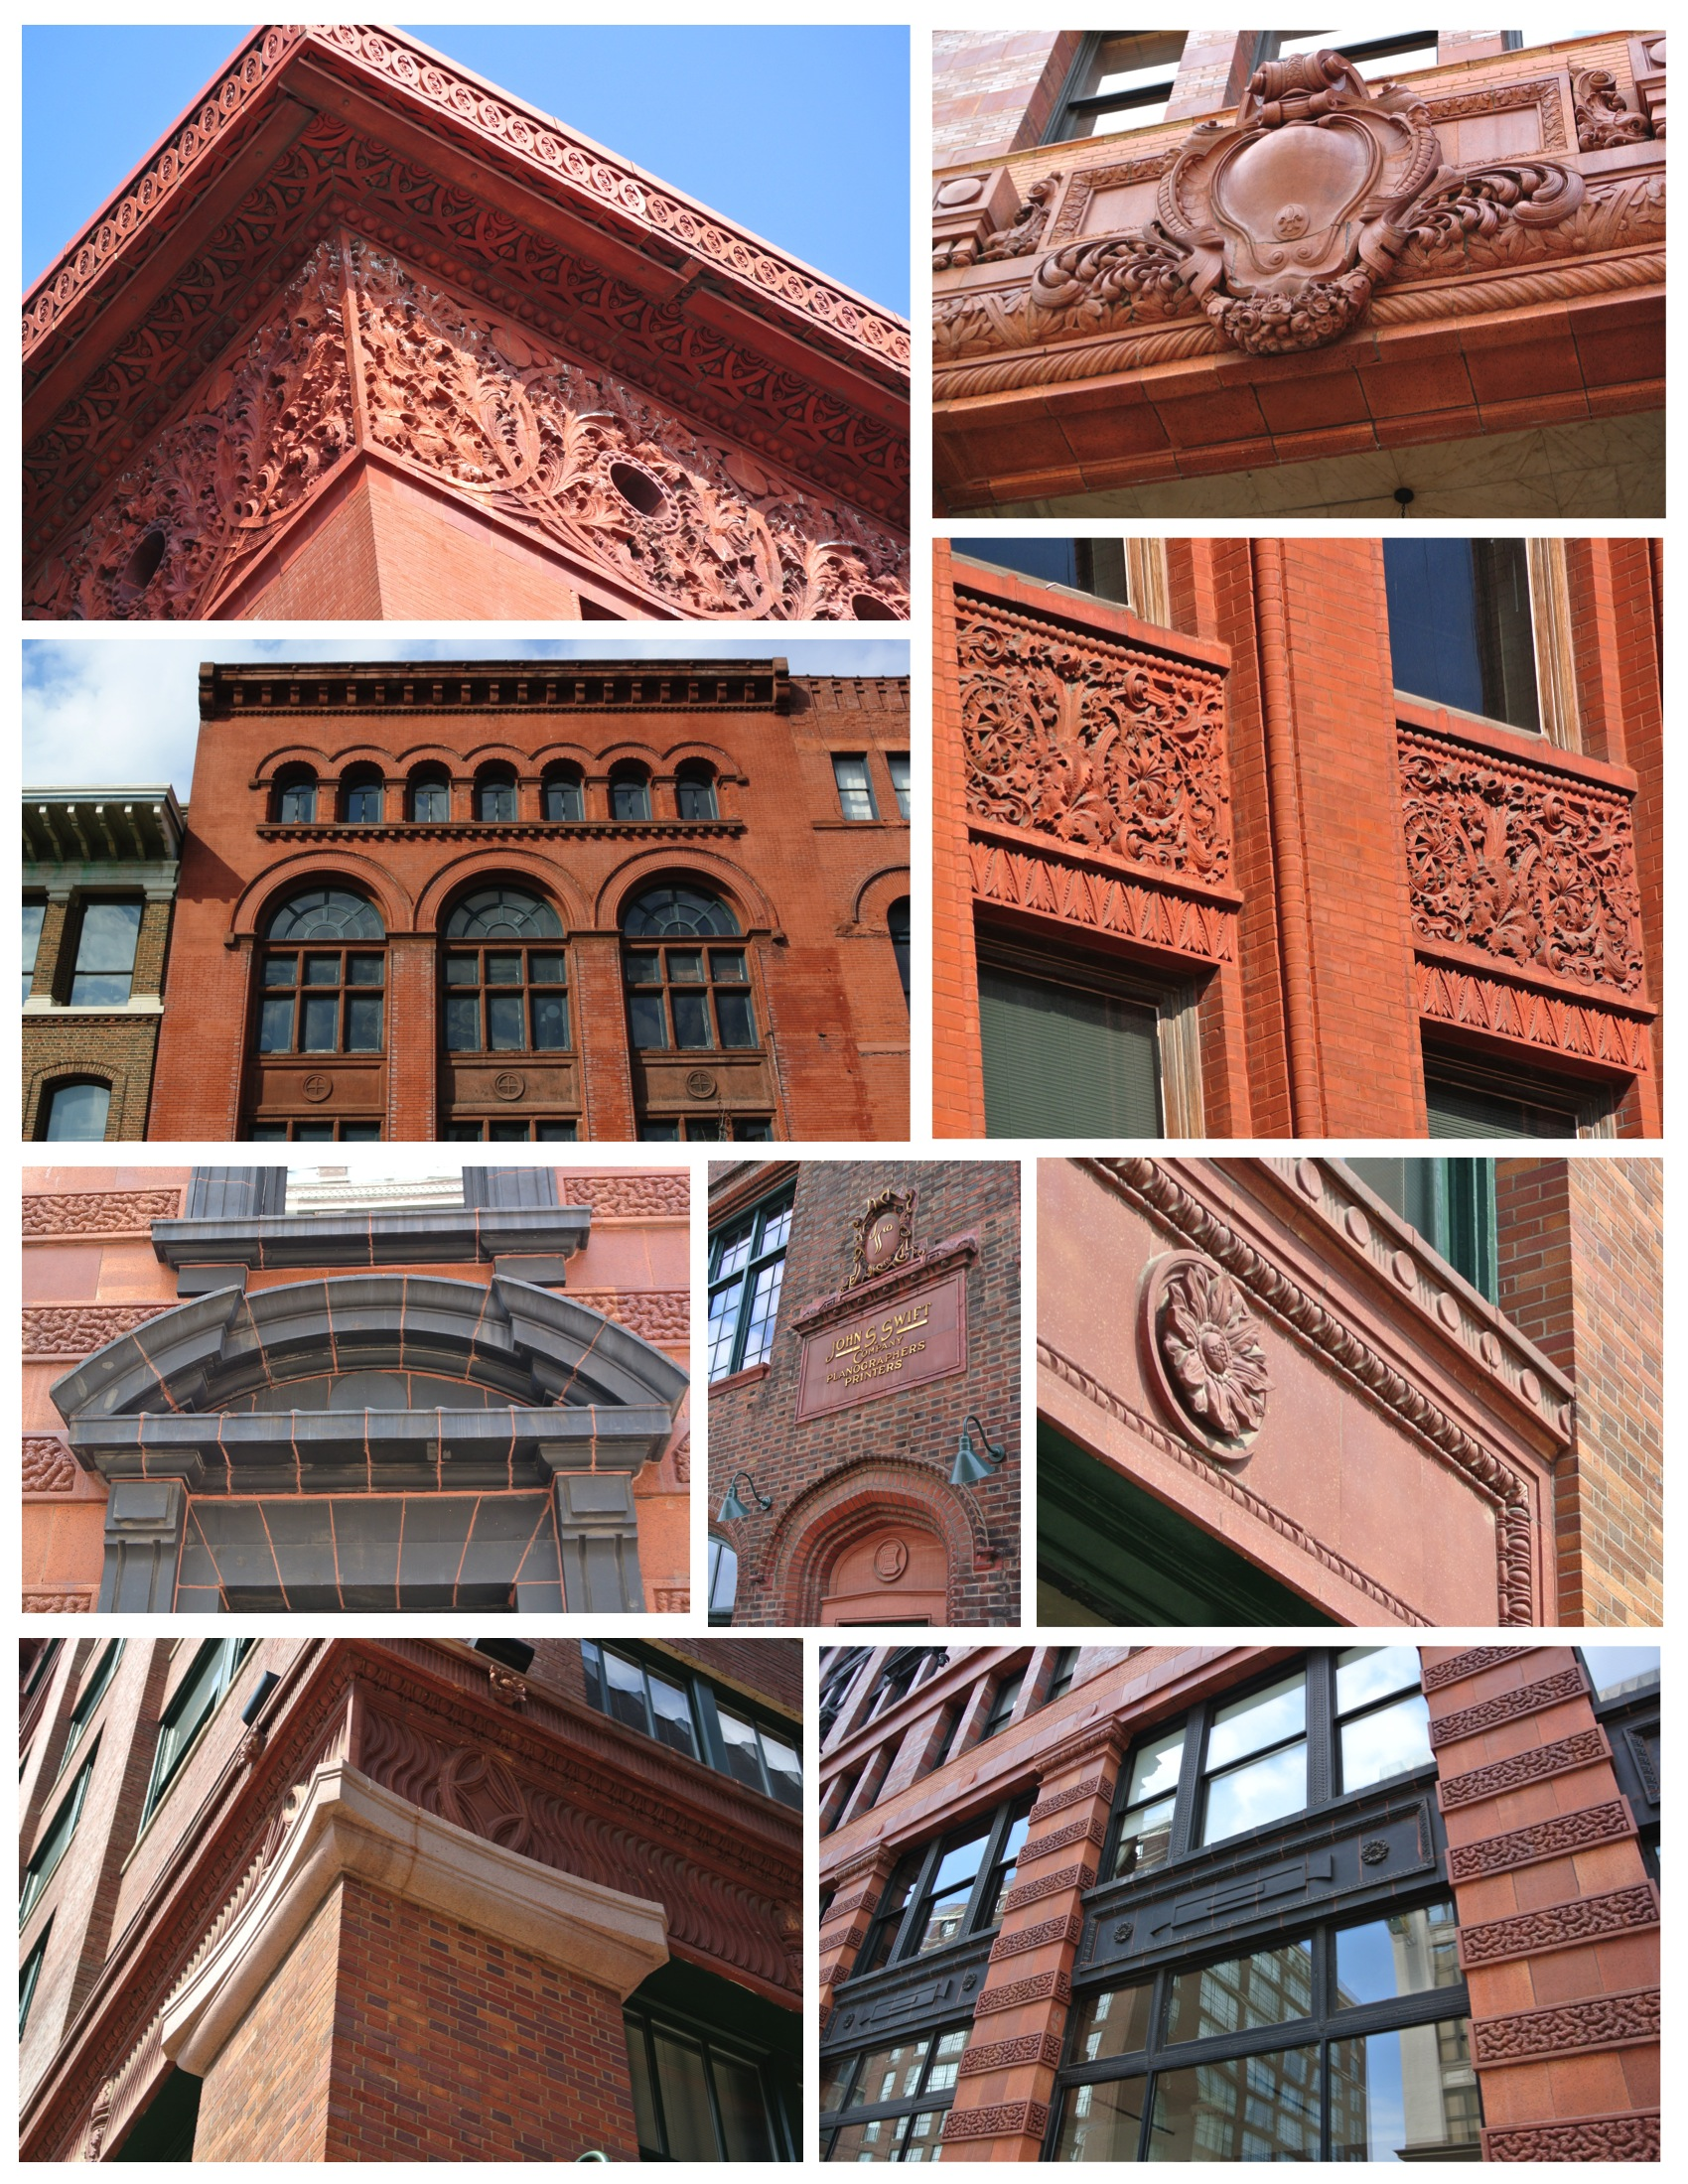 Appreciation of a city s architectural details st louis for St louis architecture